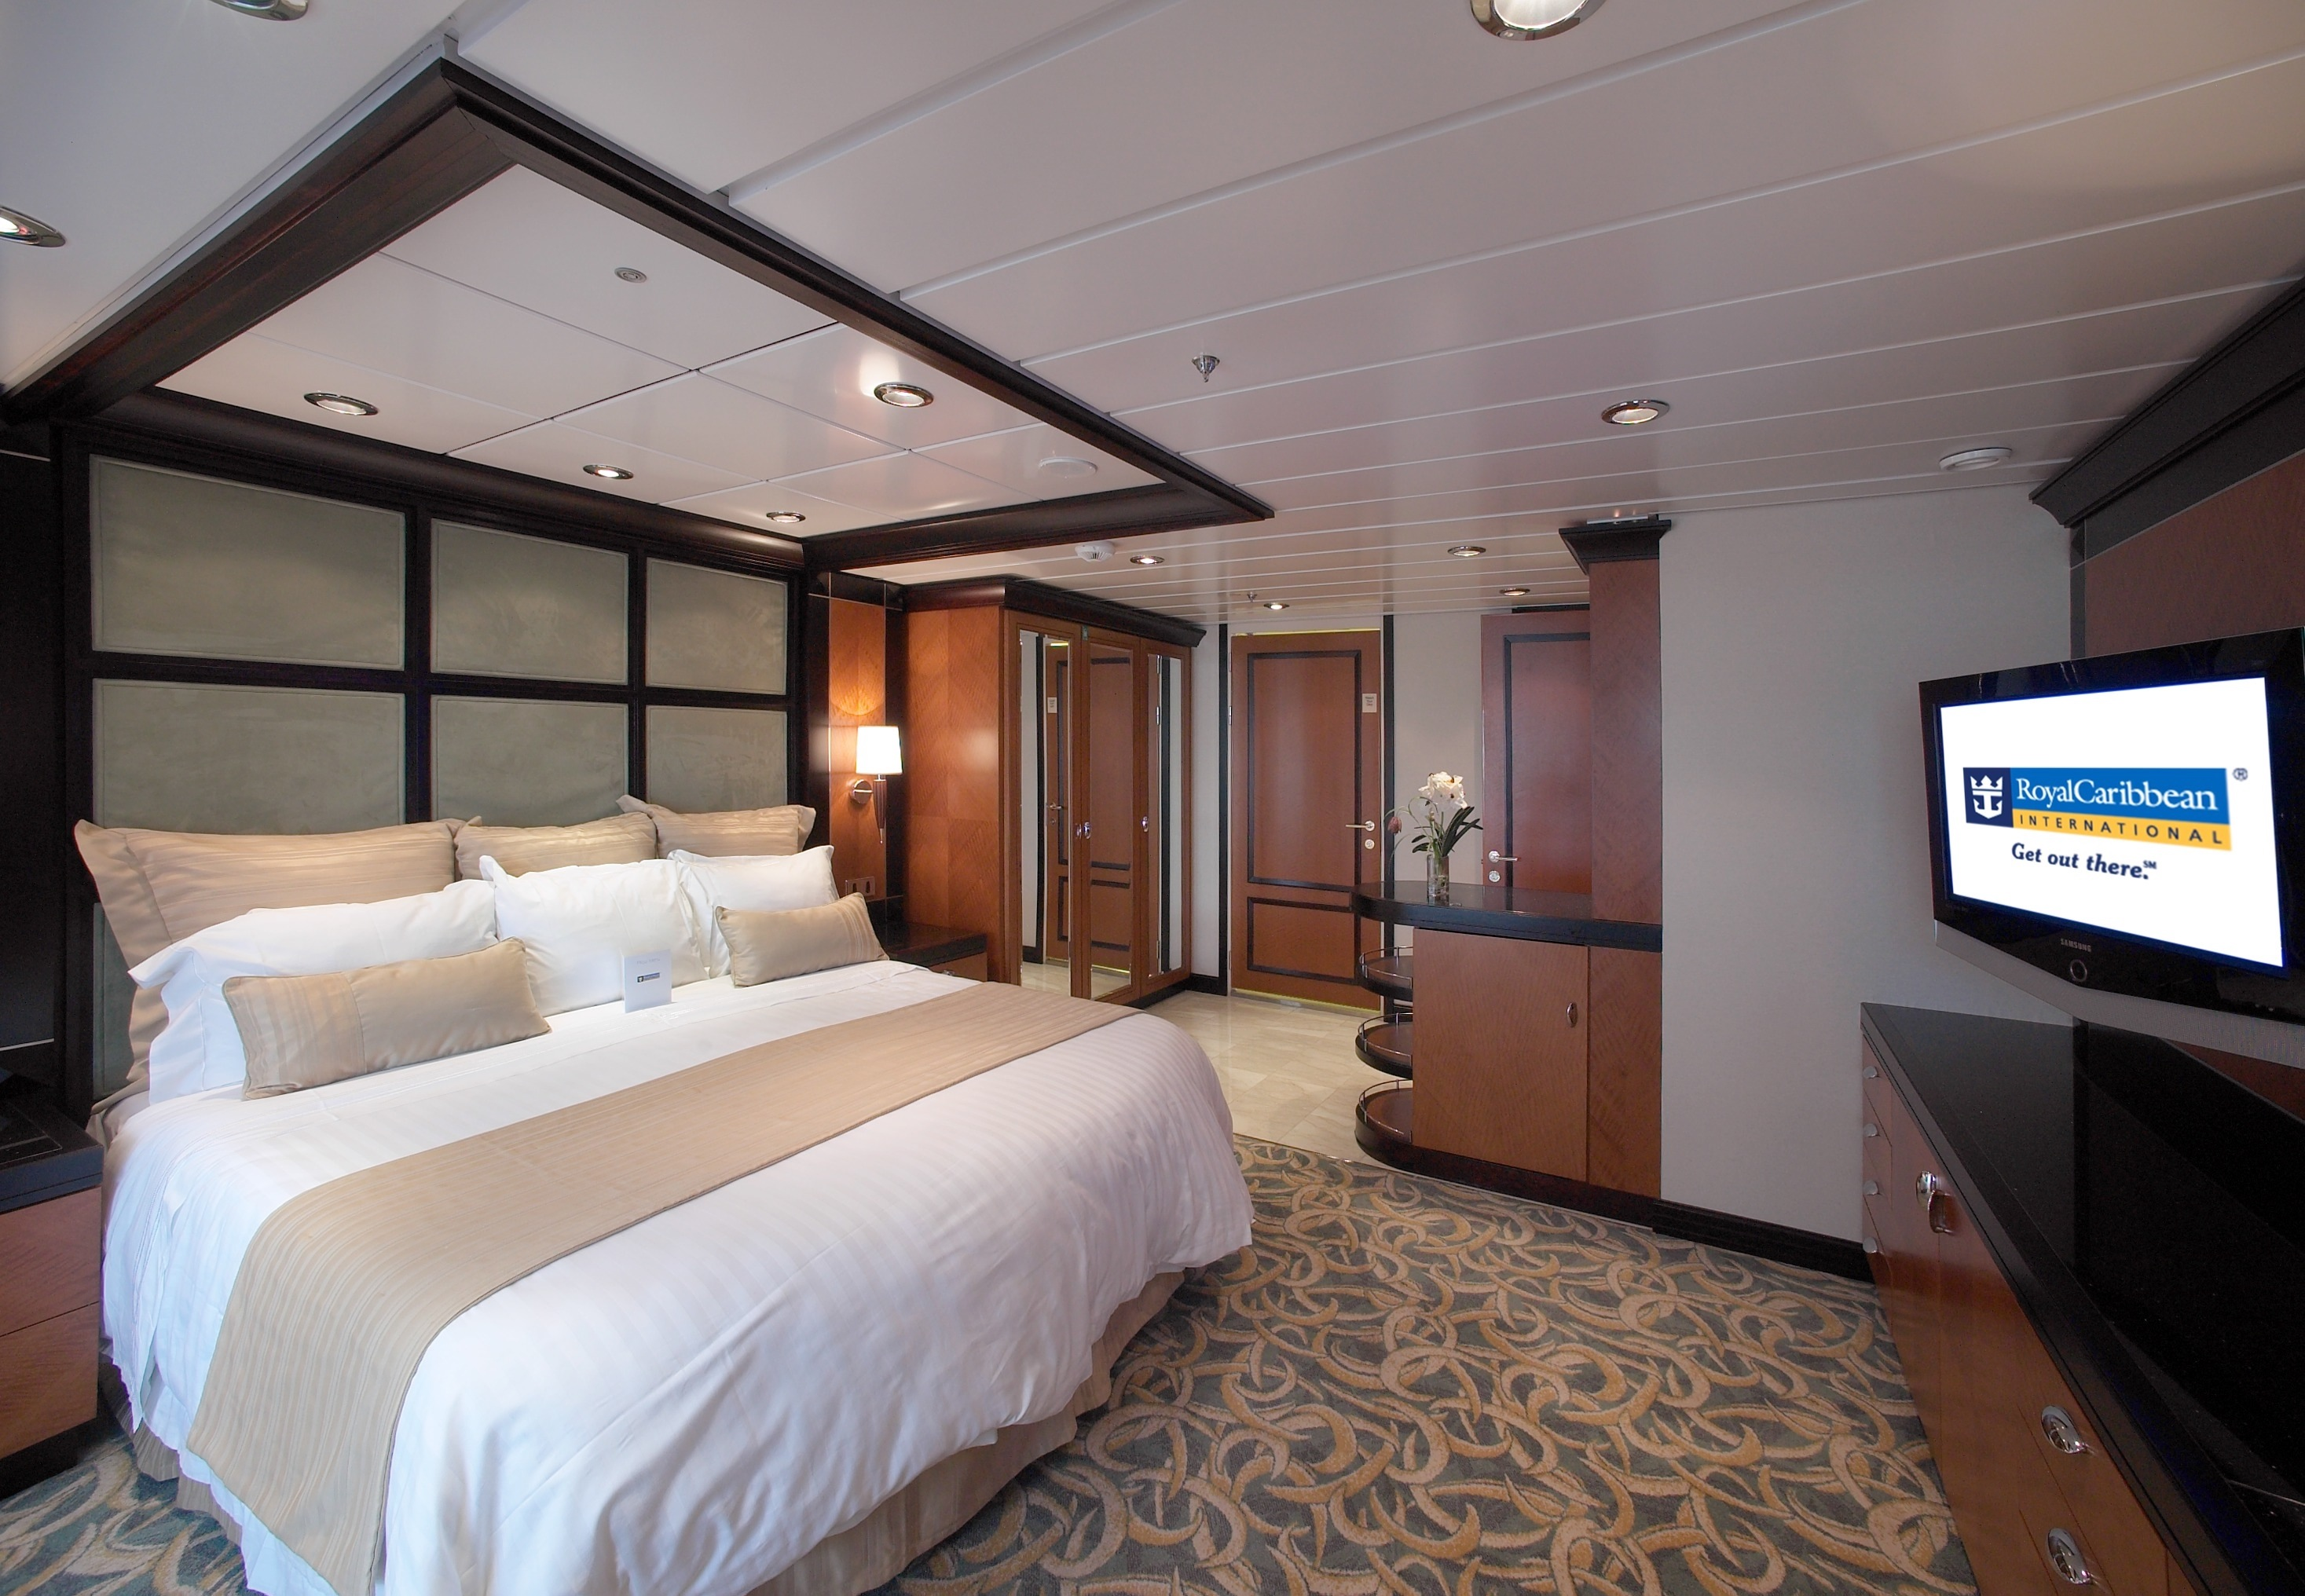 Royal Caribbean International Freedom of the Seas Accommodation Presidential Family Suite 4.jpg